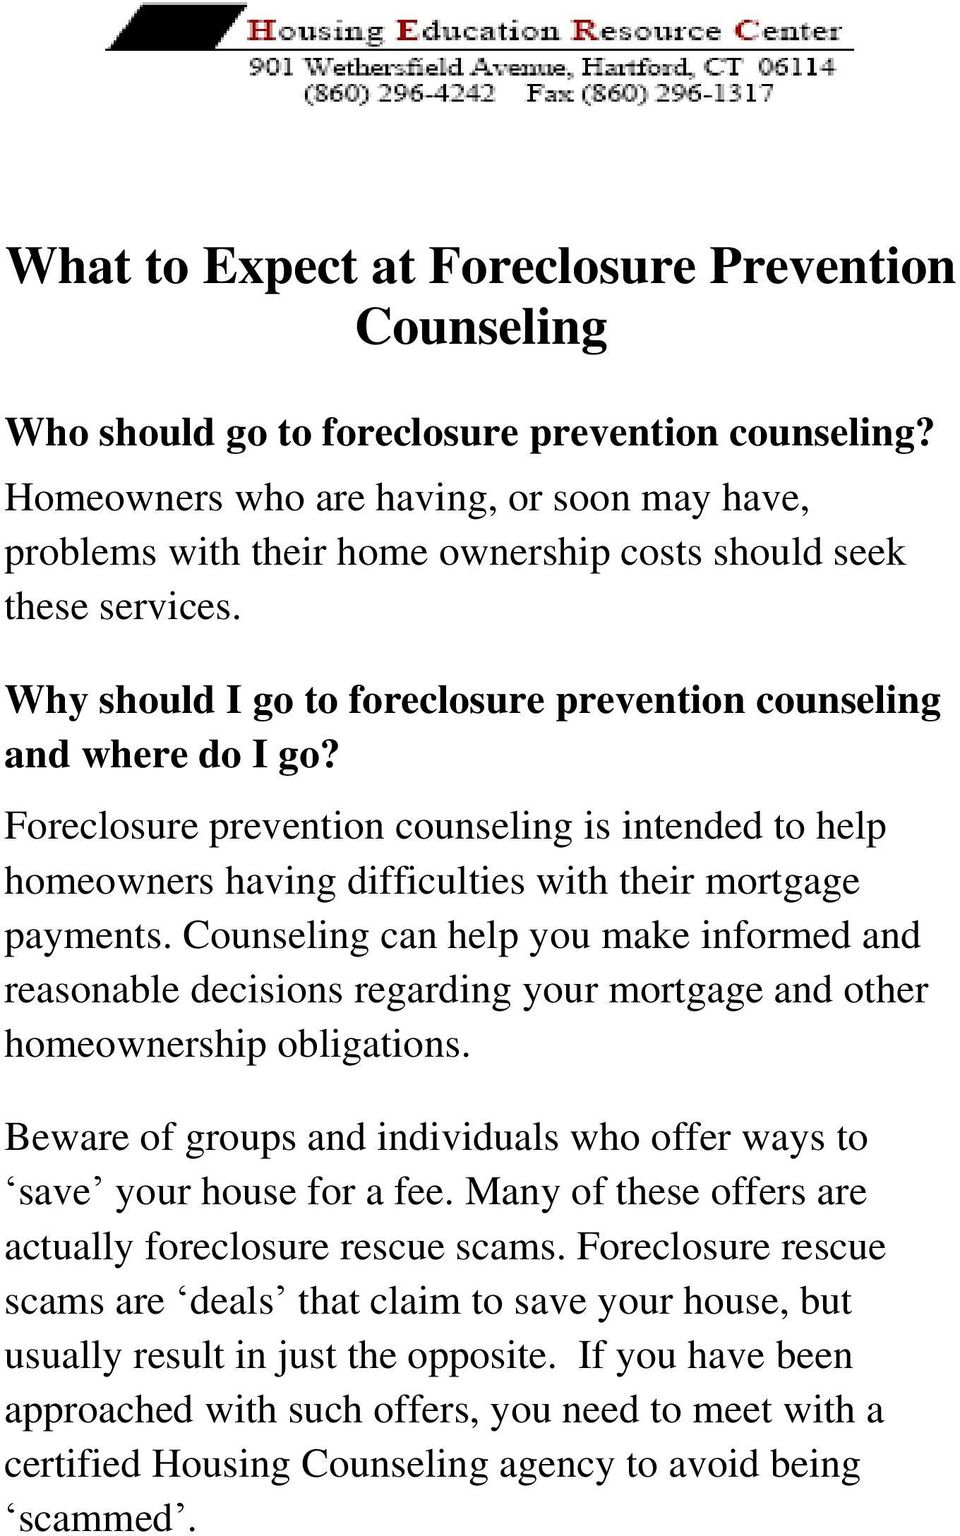 Foreclosure prevention counseling is intended to help homeowners having difficulties with their mortgage payments.